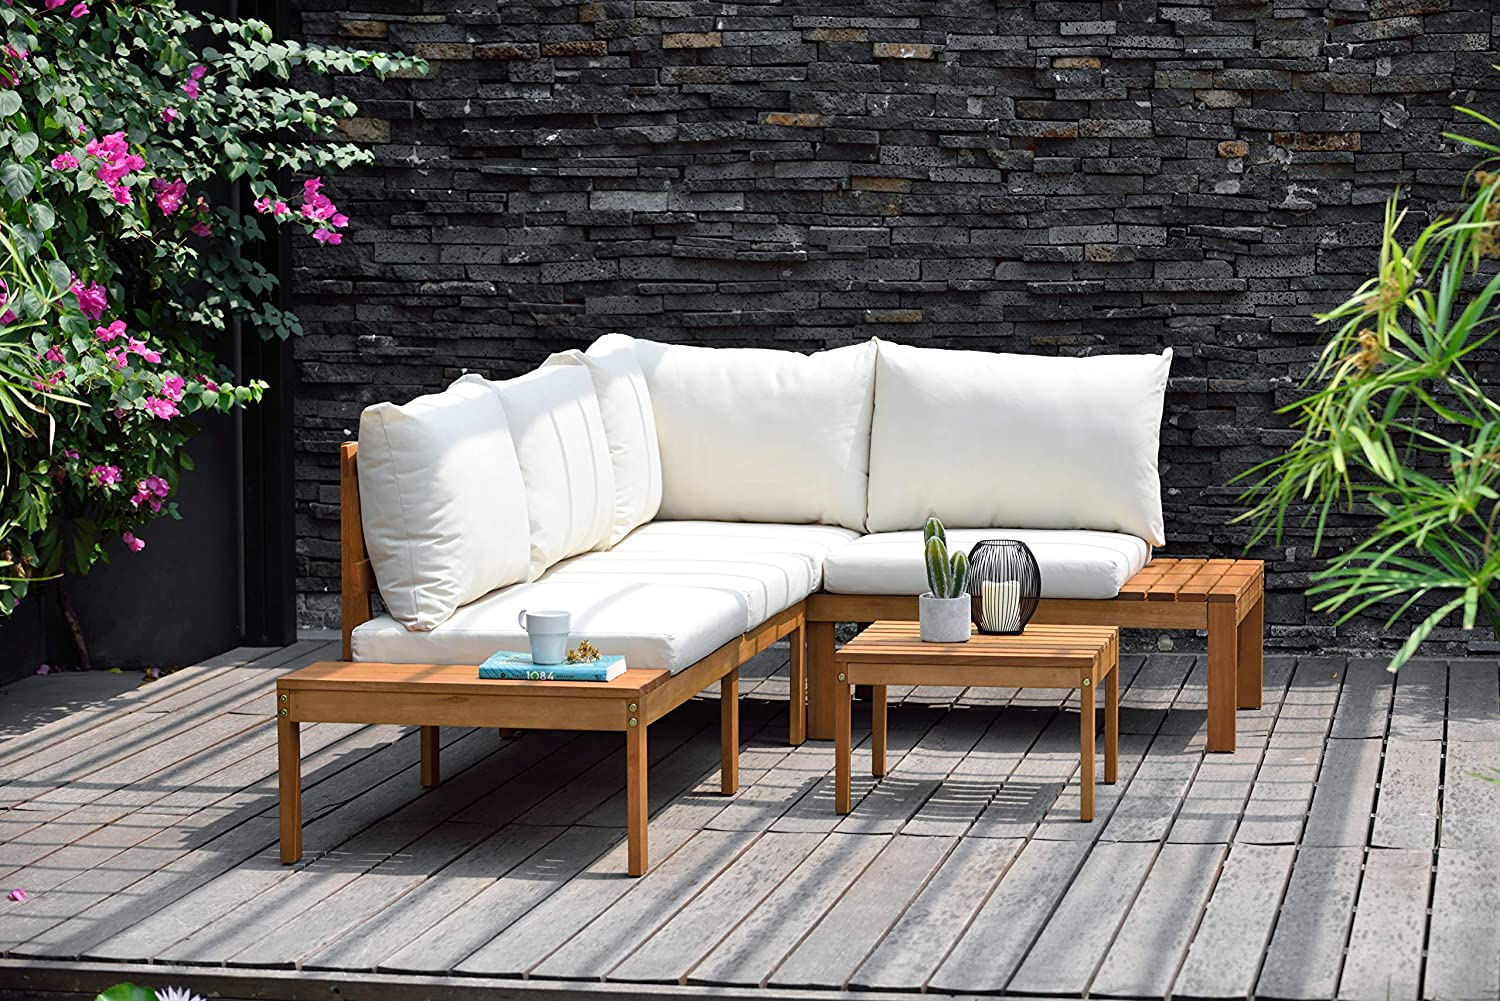 Brampton Lincoln 4-Piece Patio Sectional Set | Eucalyptus Wood and Off-White Cushions | Ideal for Outdoors and Indoors